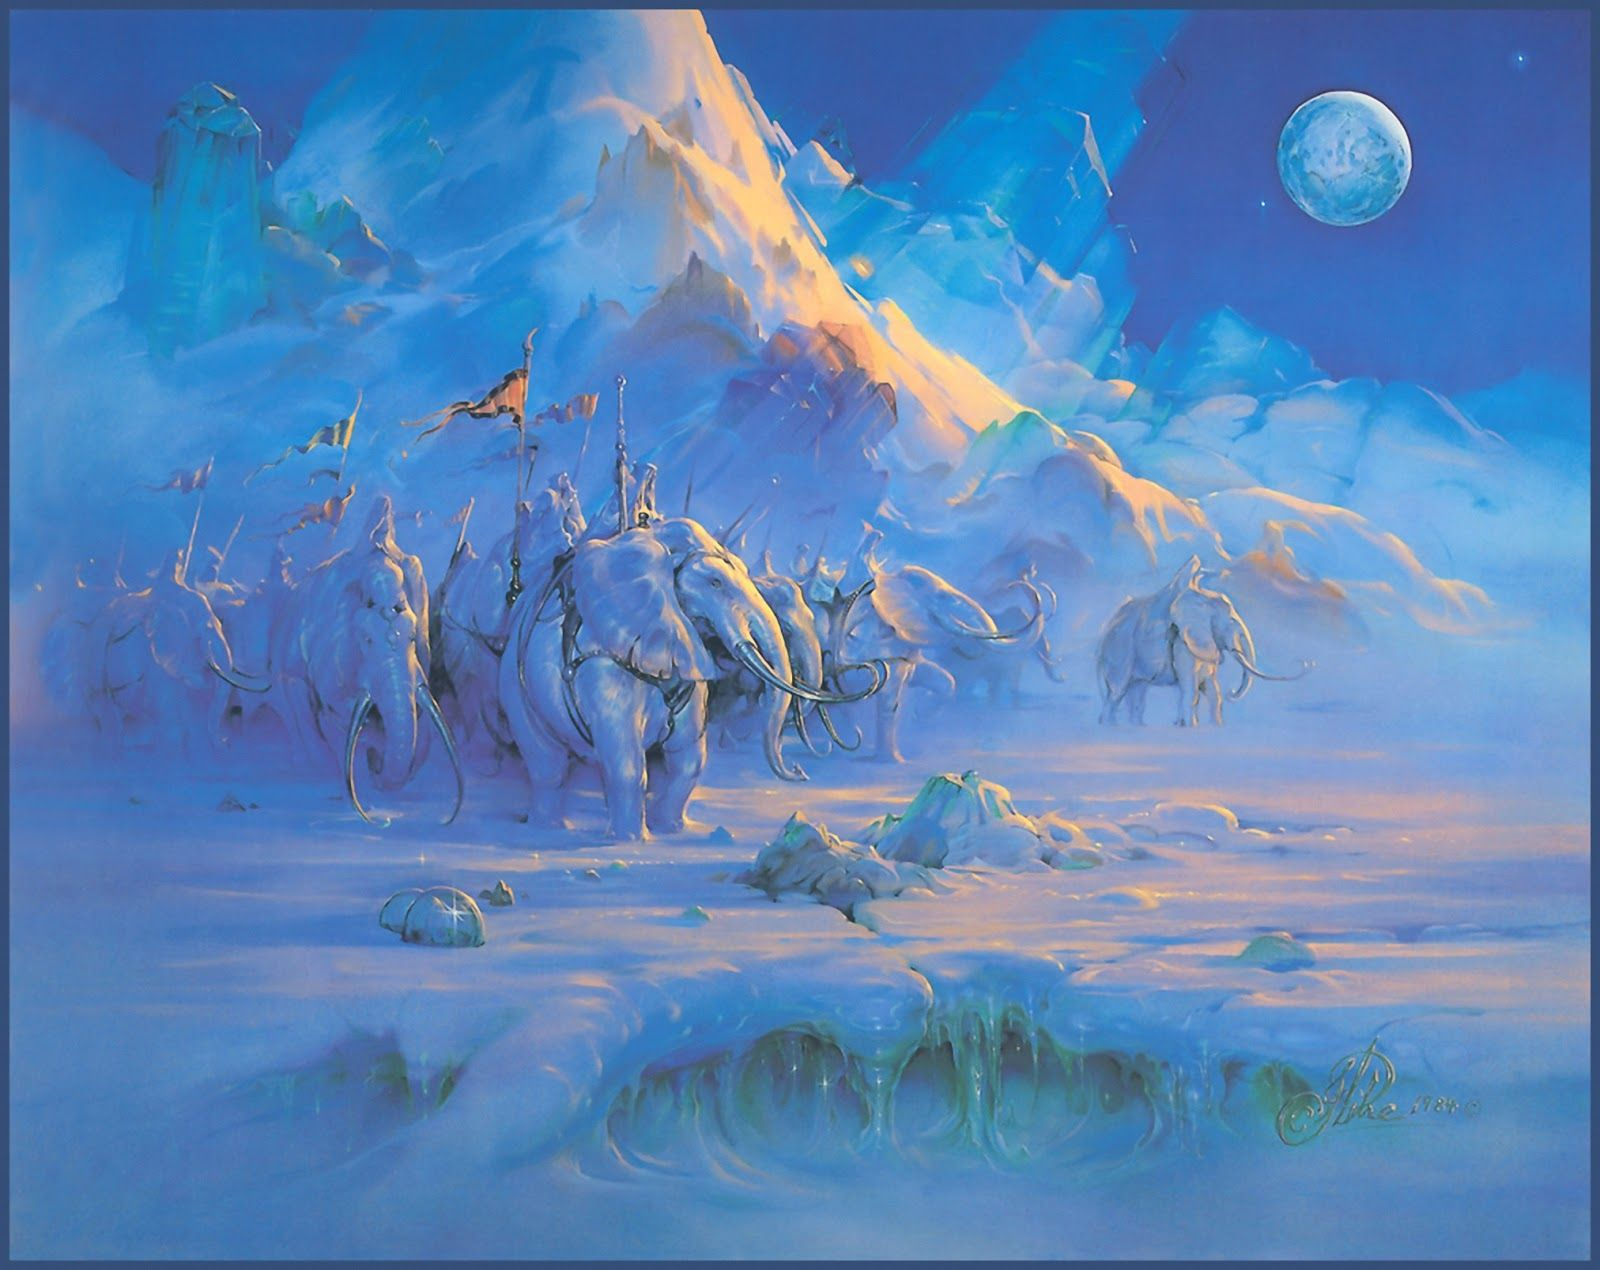 John Pitre, 1942 ~ Fantasy/Surrealist painter | Tutt'Art@ | Pittura * Scultura * Poesia * Musica |